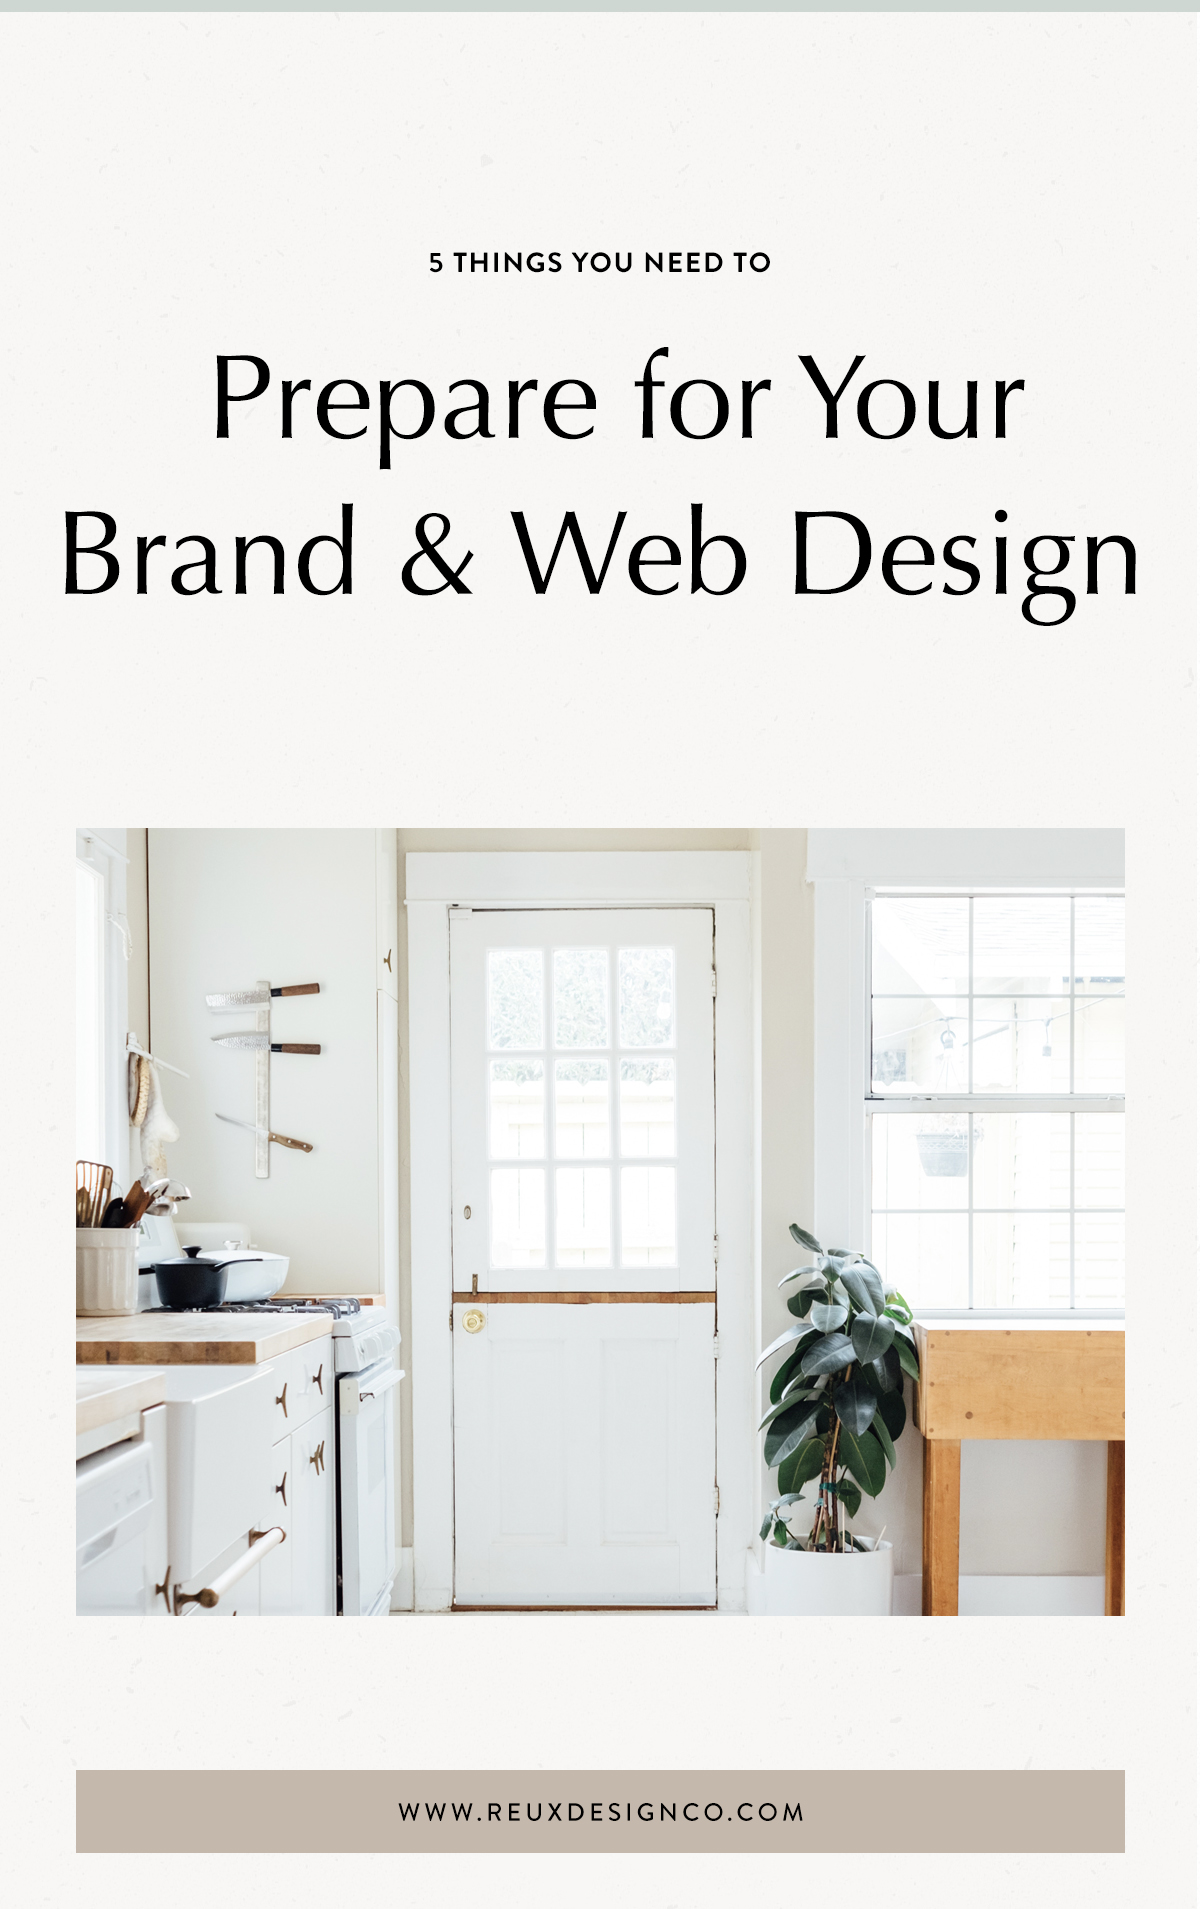 5 Things you should prepare for your brand & web design project | What you need before working with a professional designer | Reux Design Co. — Brand & Web Design for Holistic, Sustainable Businesses